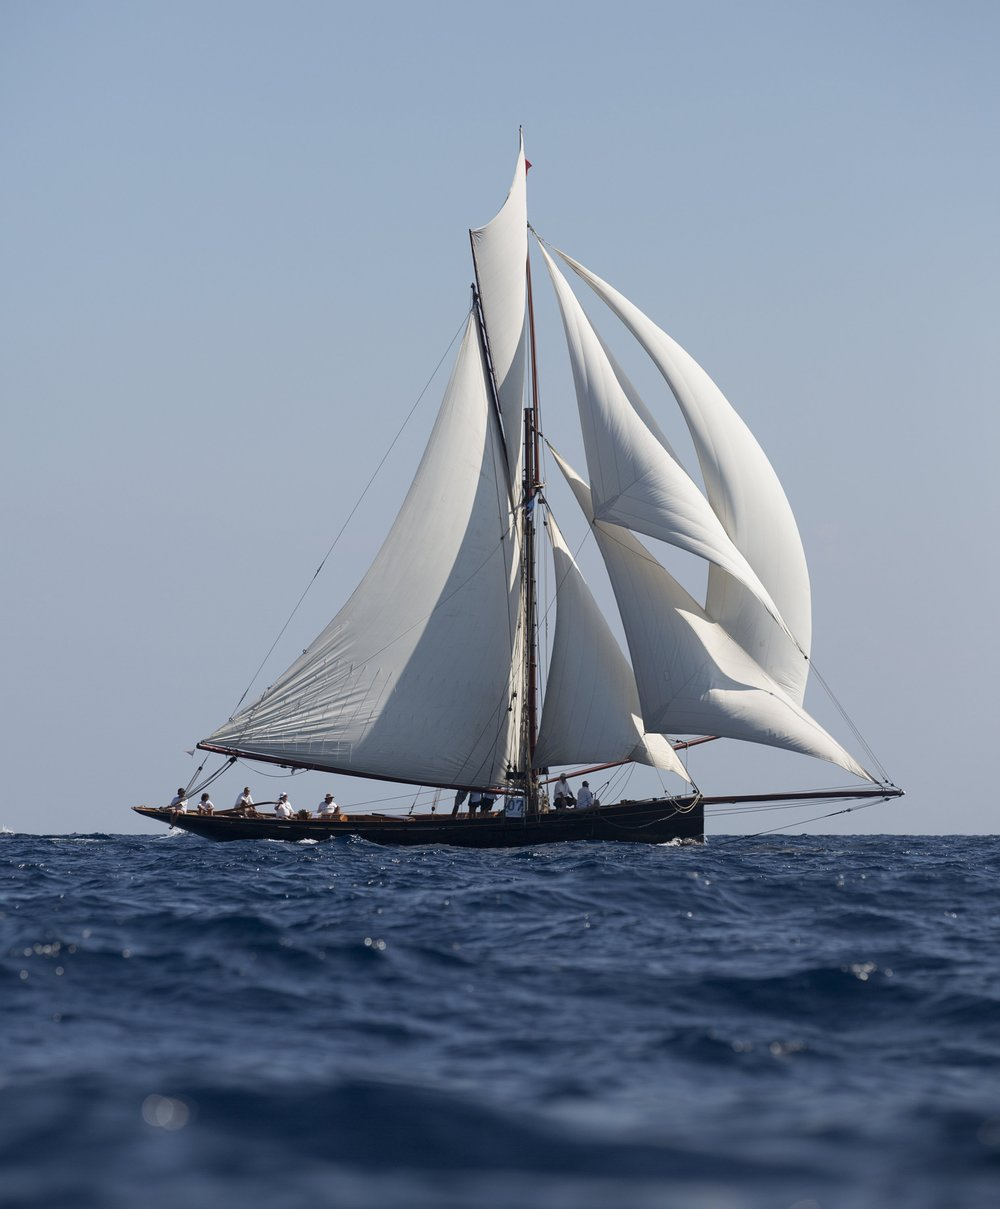 Above: Camper & Nicholson designed yacht MARIGOLD under full sail at Régate Royale Cannes Trophée Panerai 2014 © Emily Harris